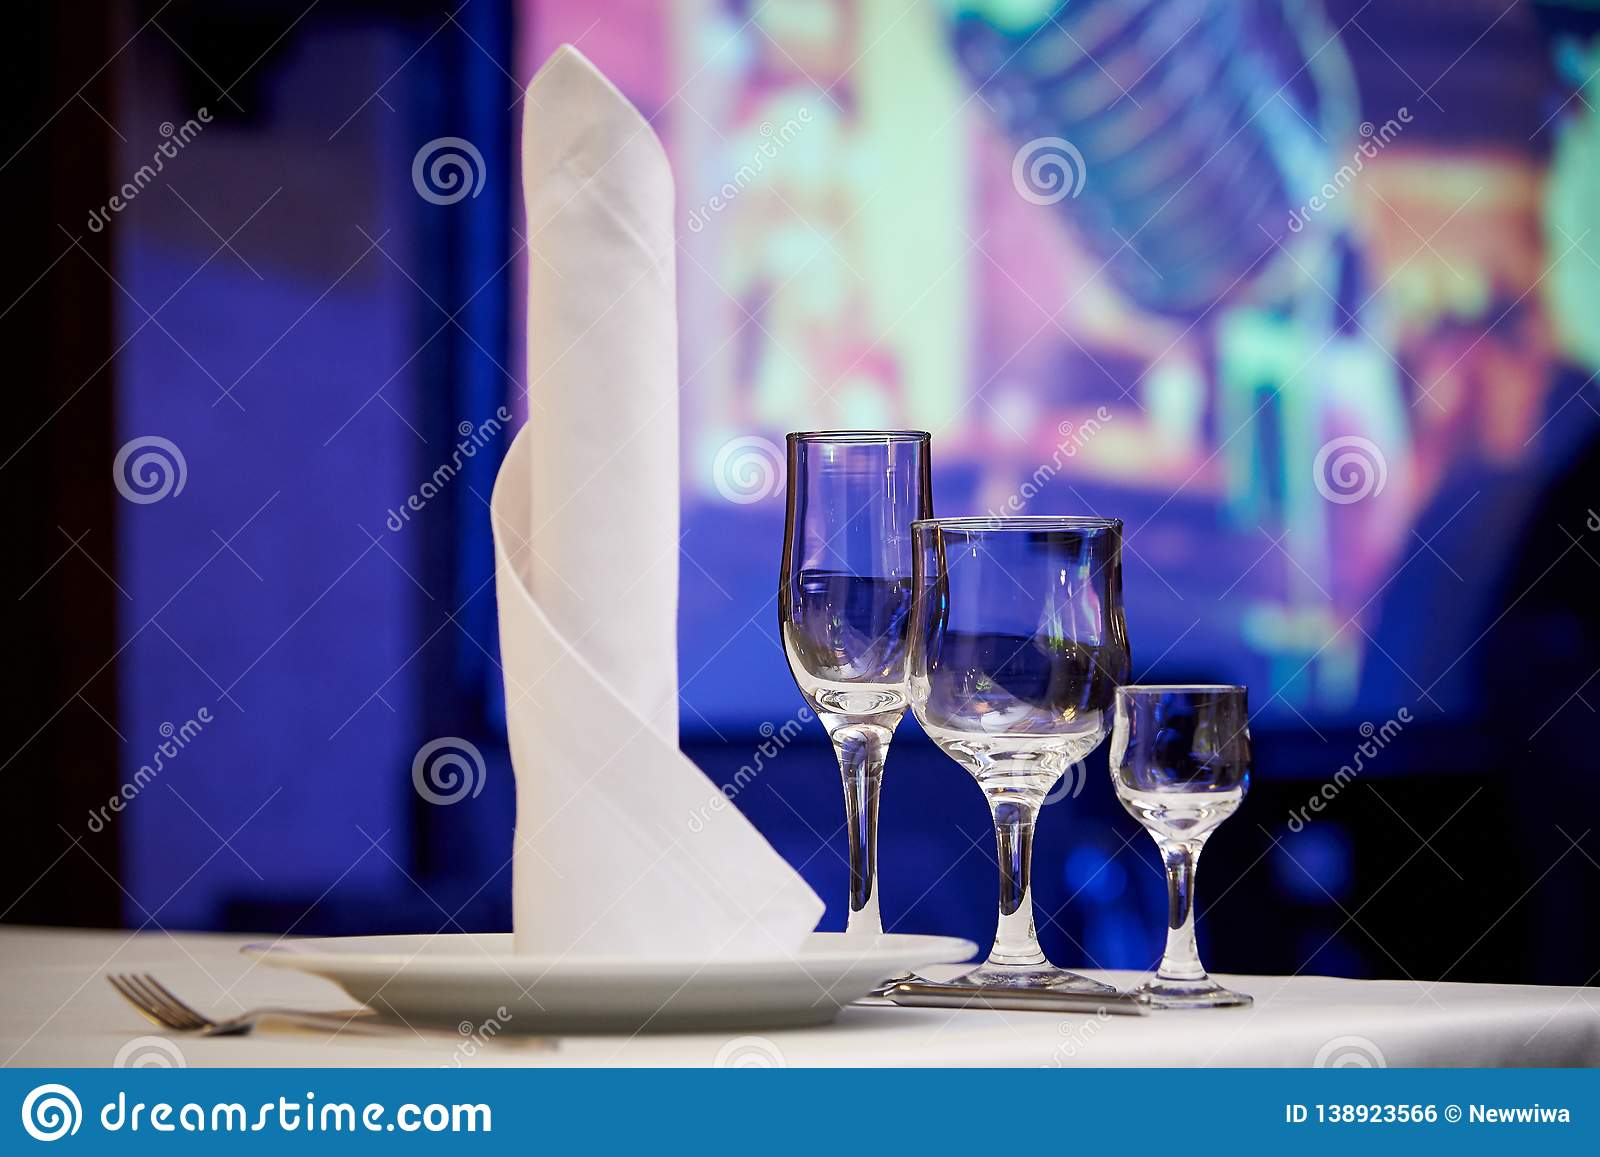 Empty glasses on the banquet table.Table setting for a banquet or dinner party